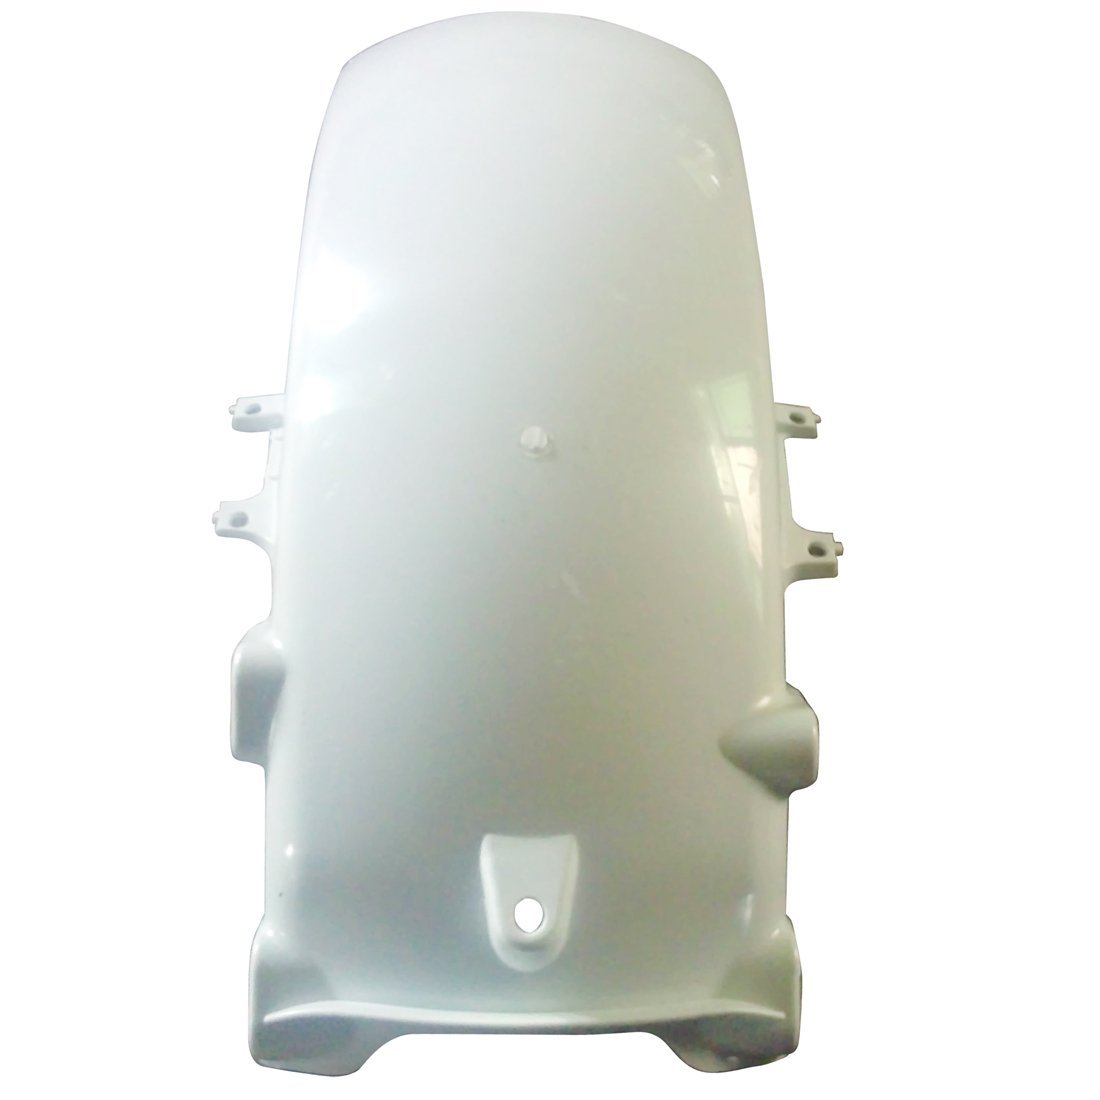 Motorcycle Rear Half Cover Front Fender For Honda 1800 GL Goldwing GL1800 2002 2006 2005 2004